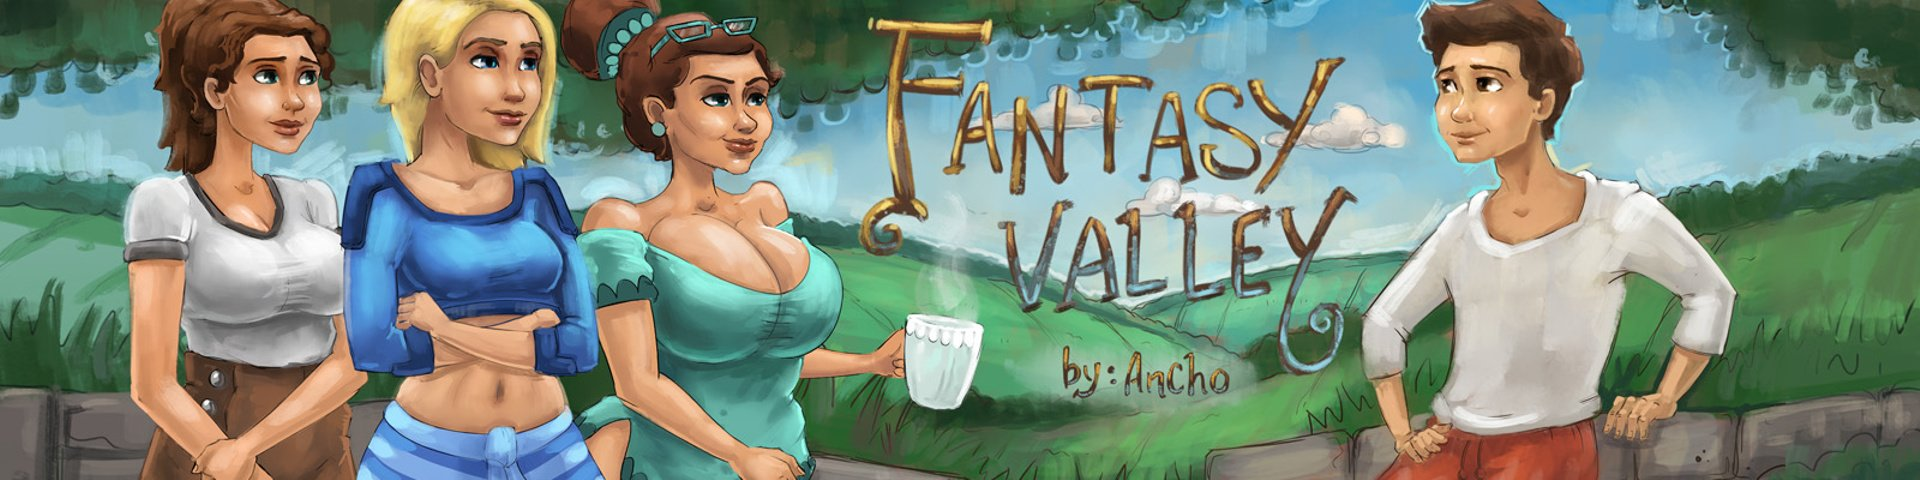 Fantasy Valley – Chapter 1-7 - Best incest hentai PC game 6